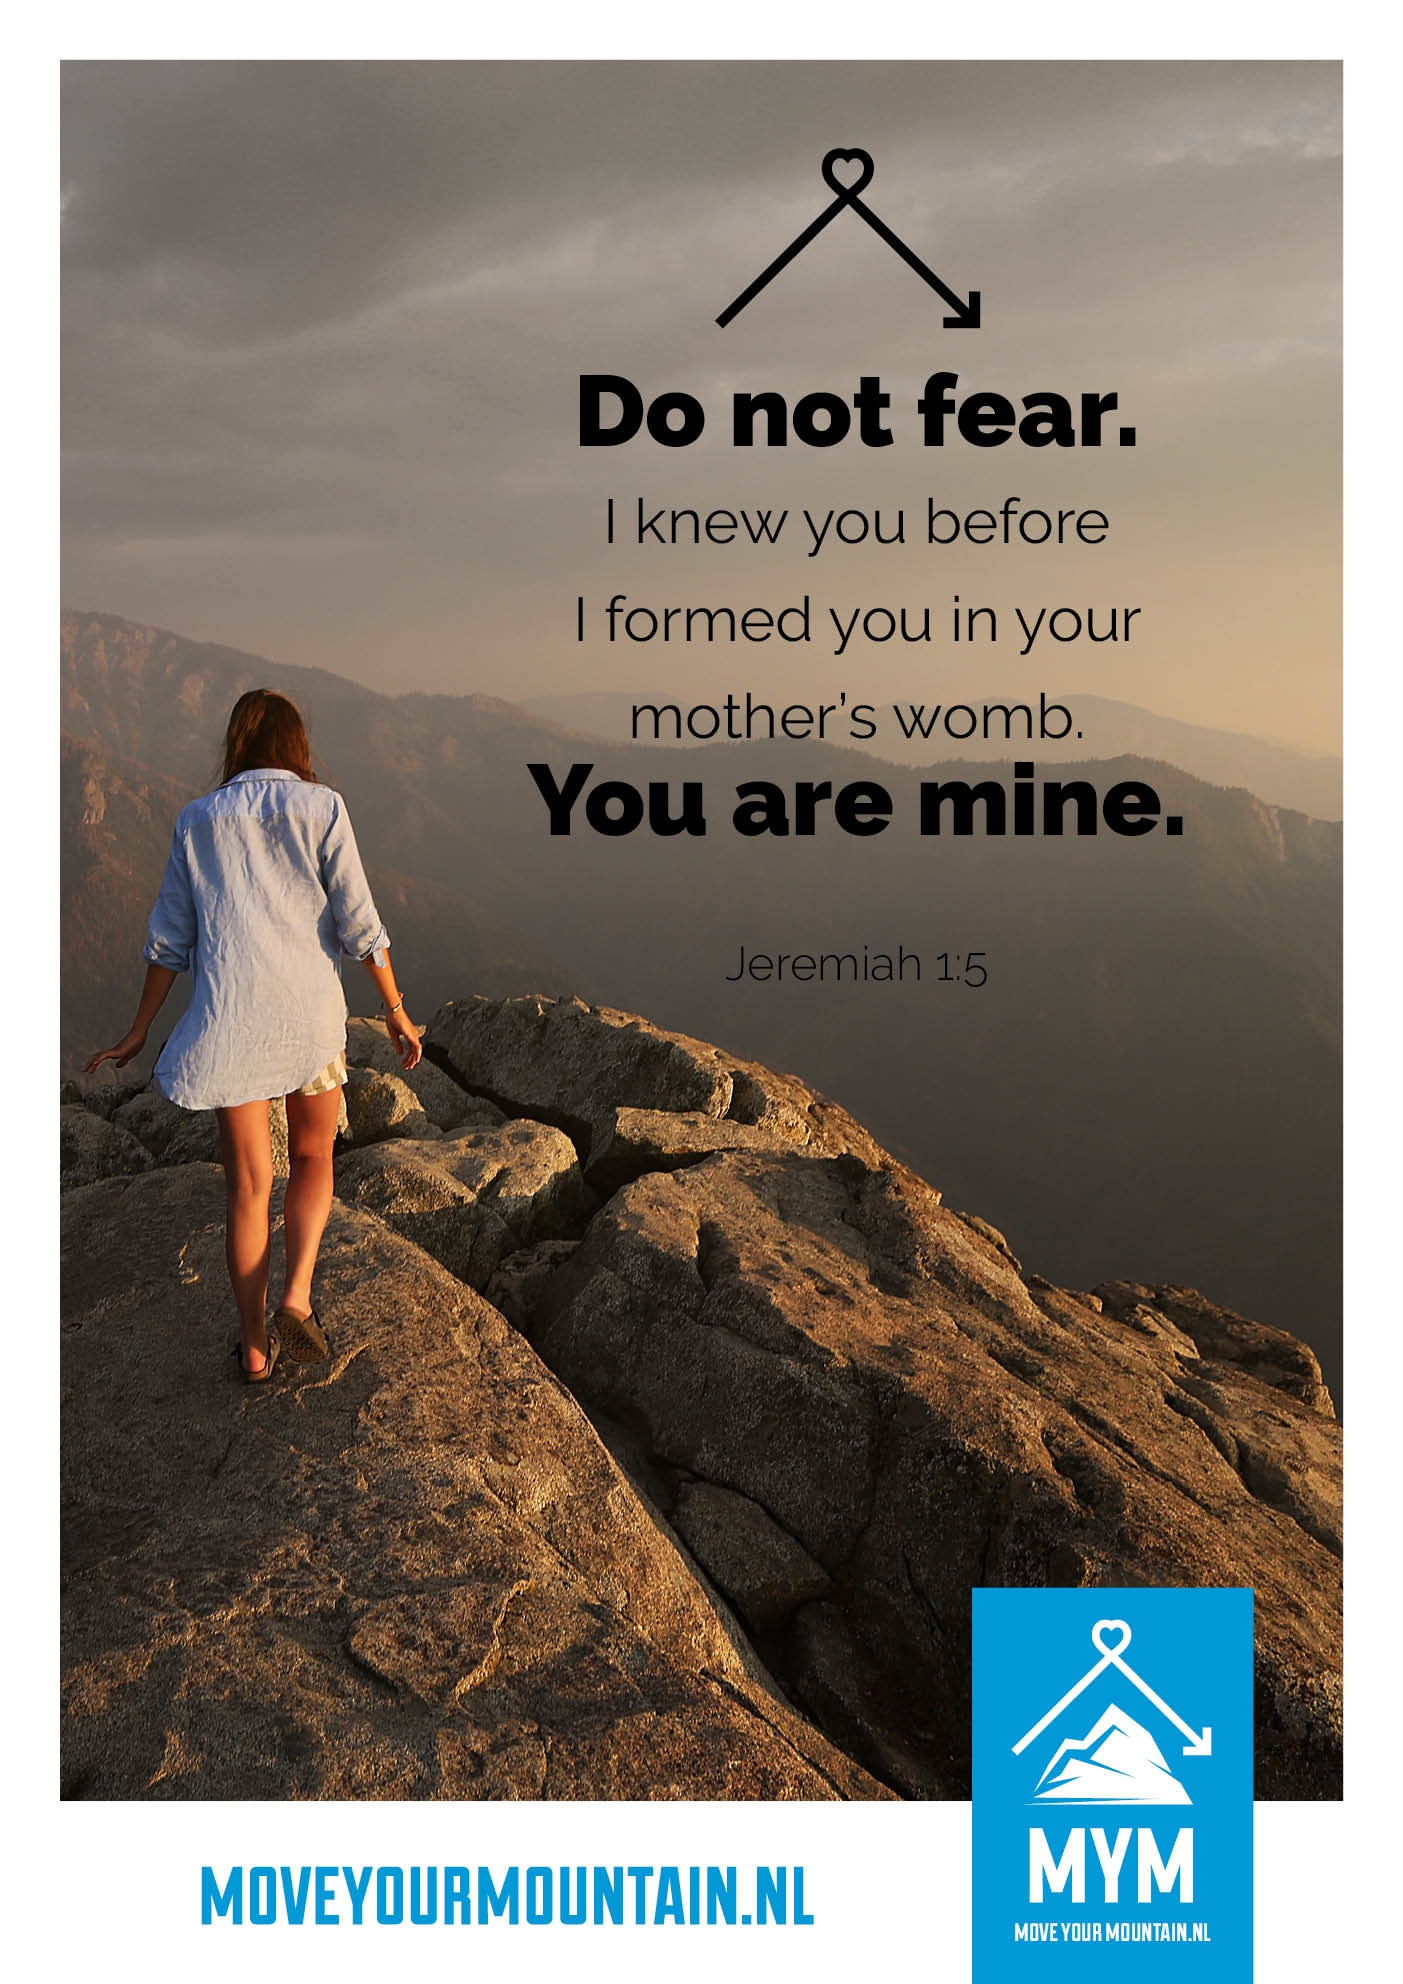 Do not Fear! I knew you before. I formed you in your mother's womb. You are mine